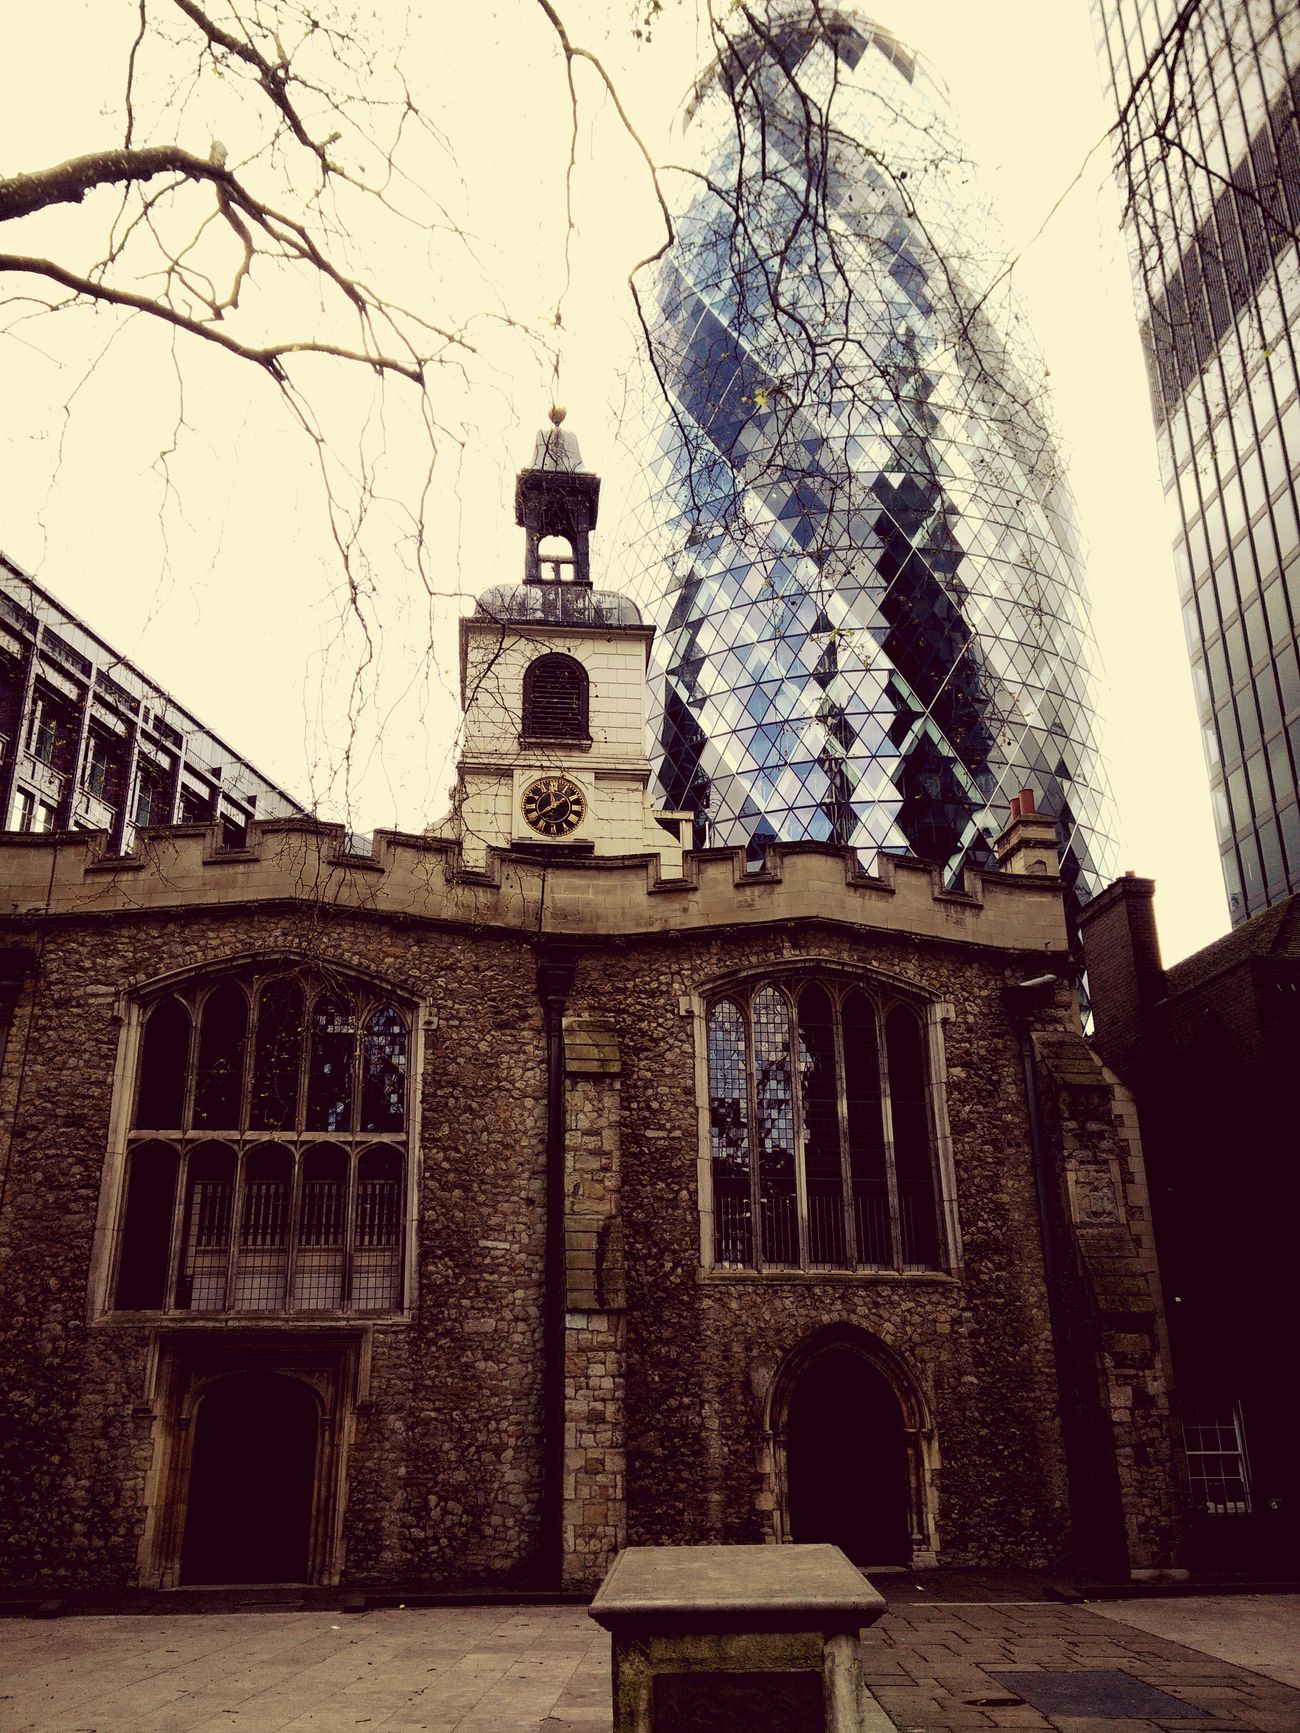 Gherkin Building Old Church Alt Und Neu Old And New Gegensätze